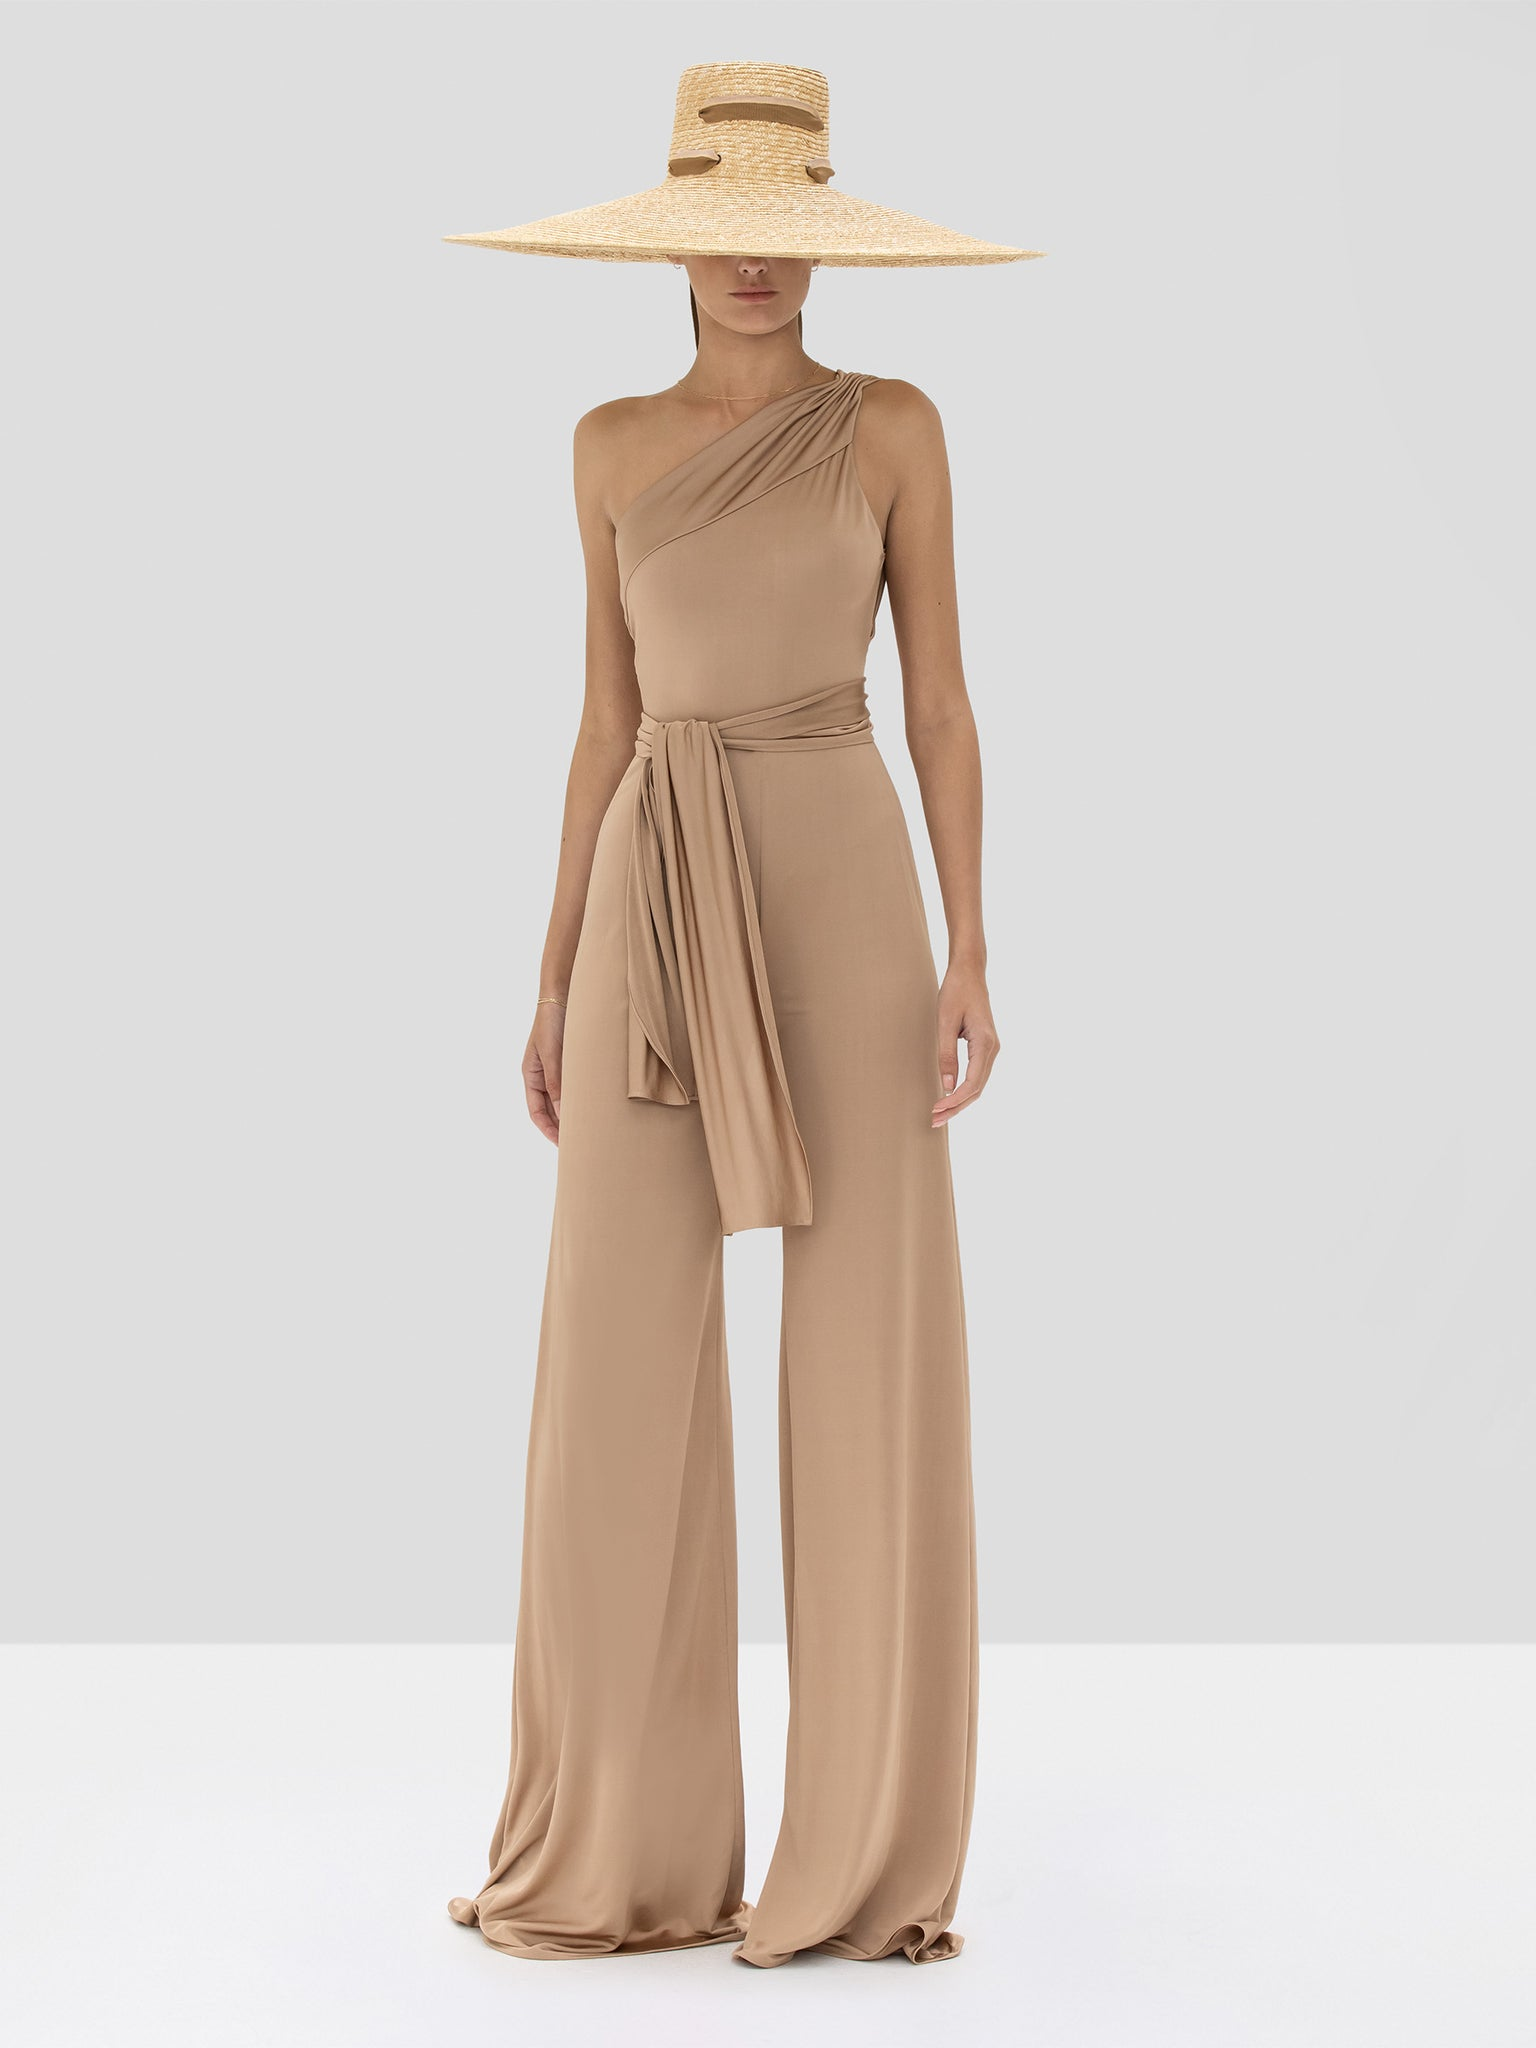 Alexis Parson Jumpsuit in Tan from the Spring Summer 2020 Collection